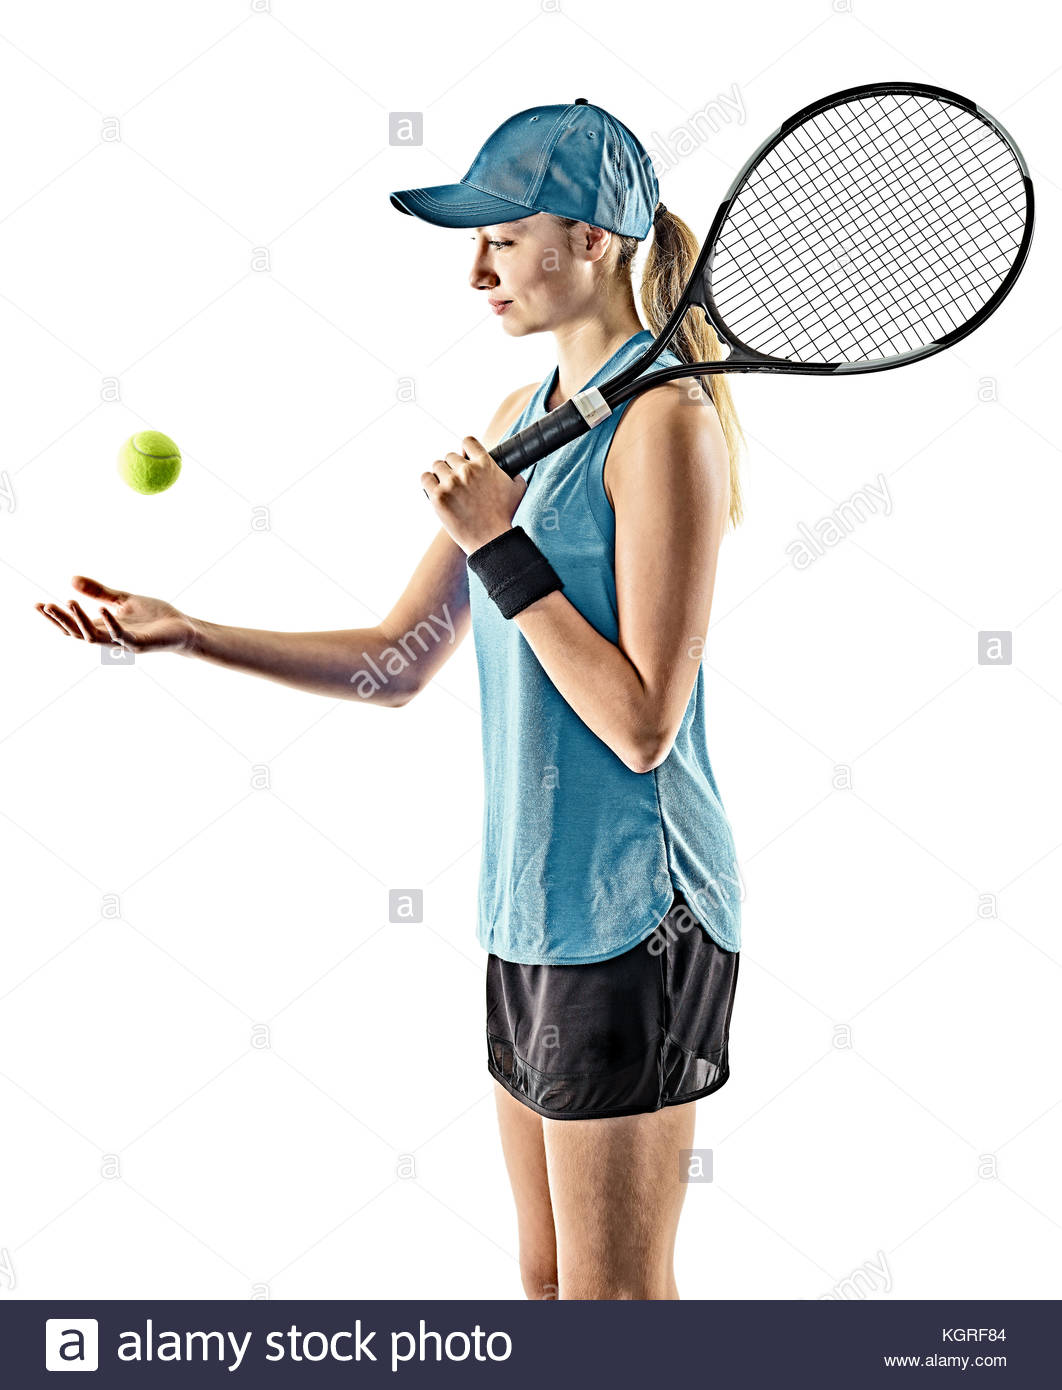 1062x1390 One Young Caucasian Tennis Woman Isolated In Silhouette On White